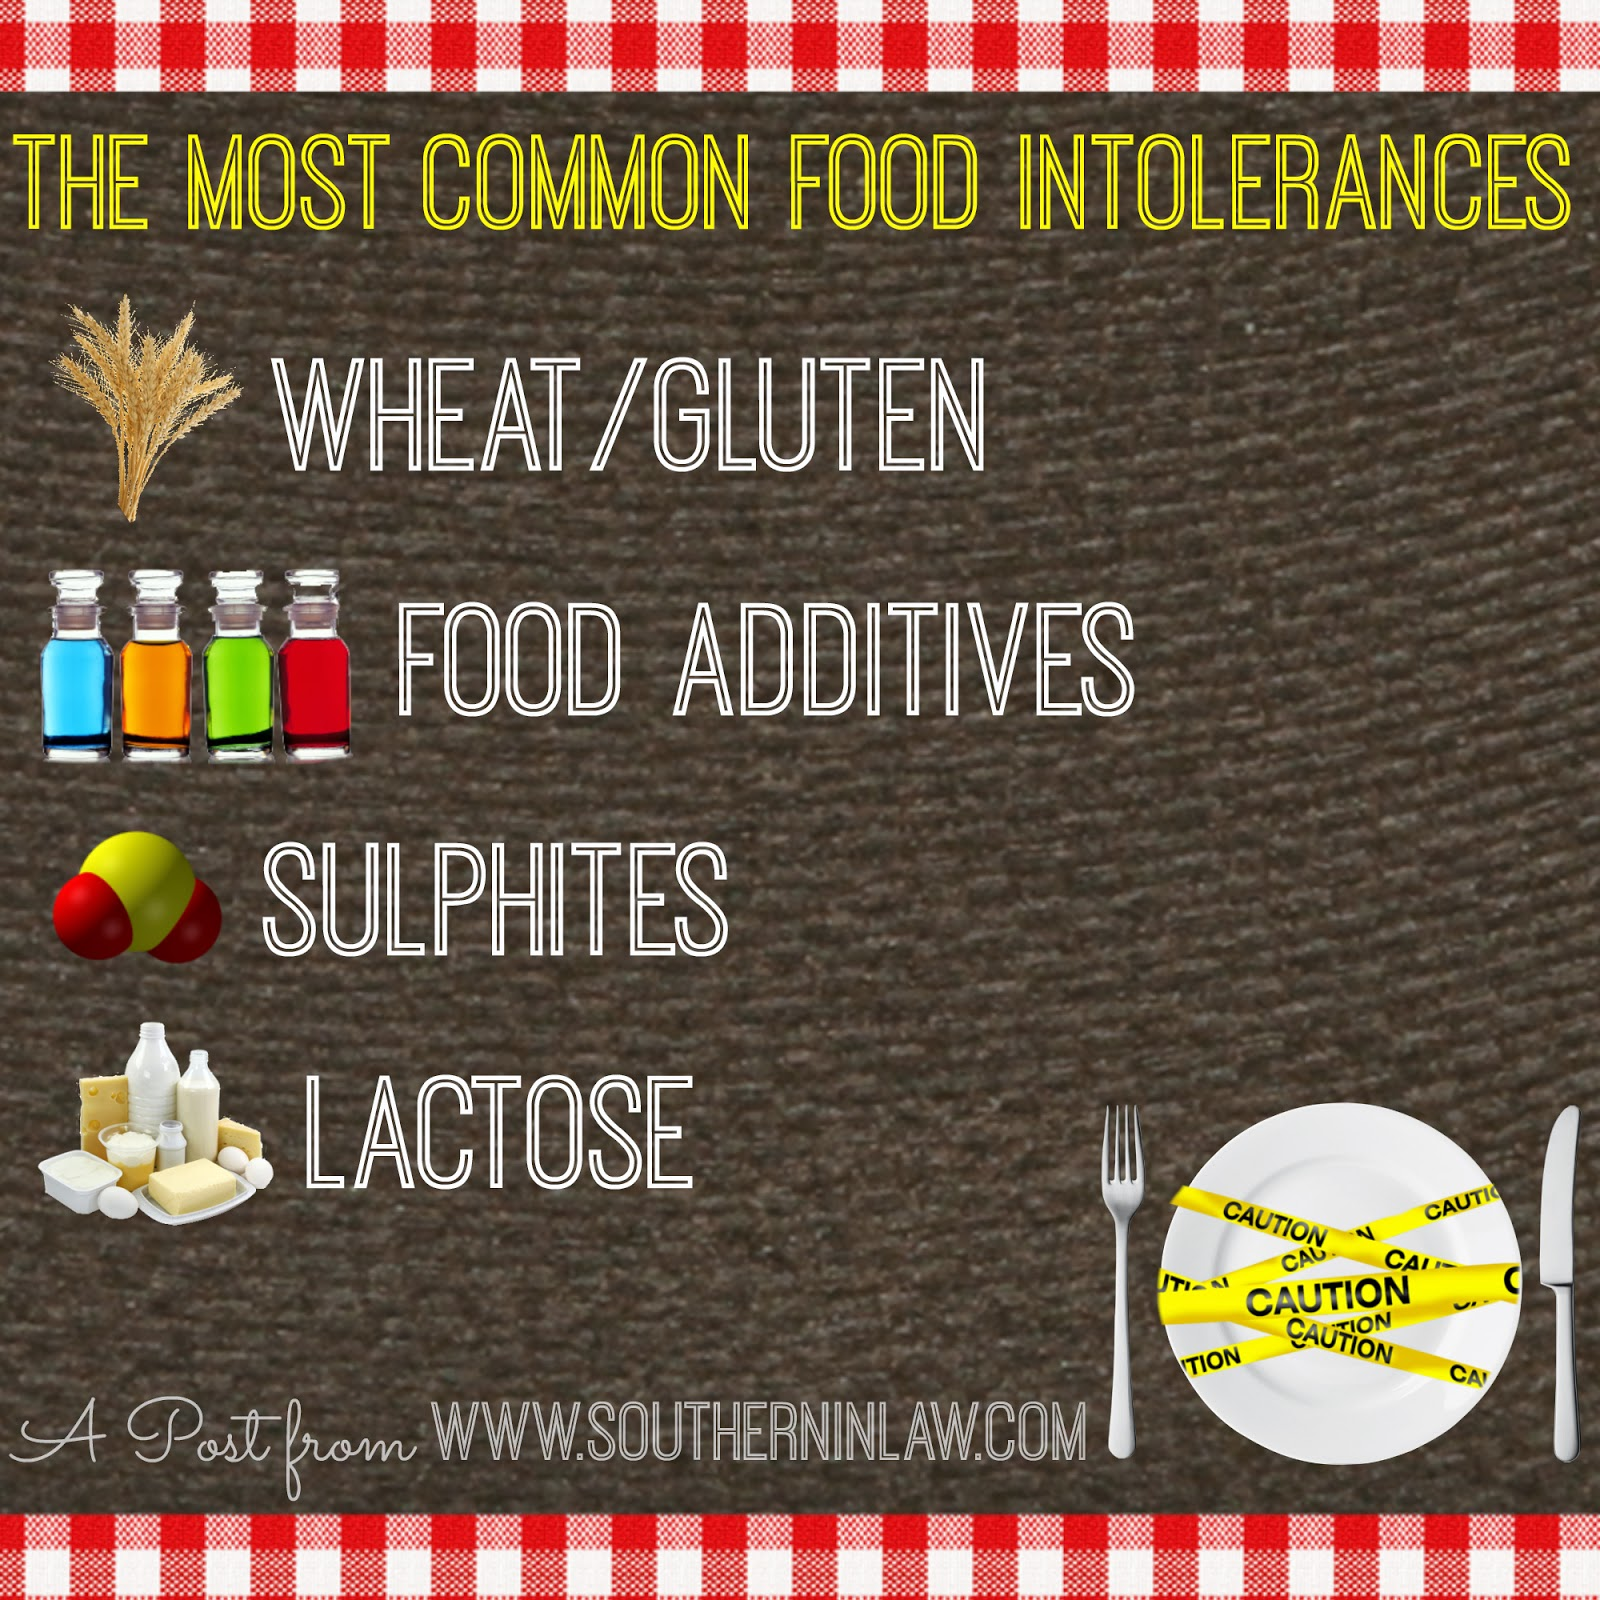 The most common food intolerances - The difference between food allergies and intolerances